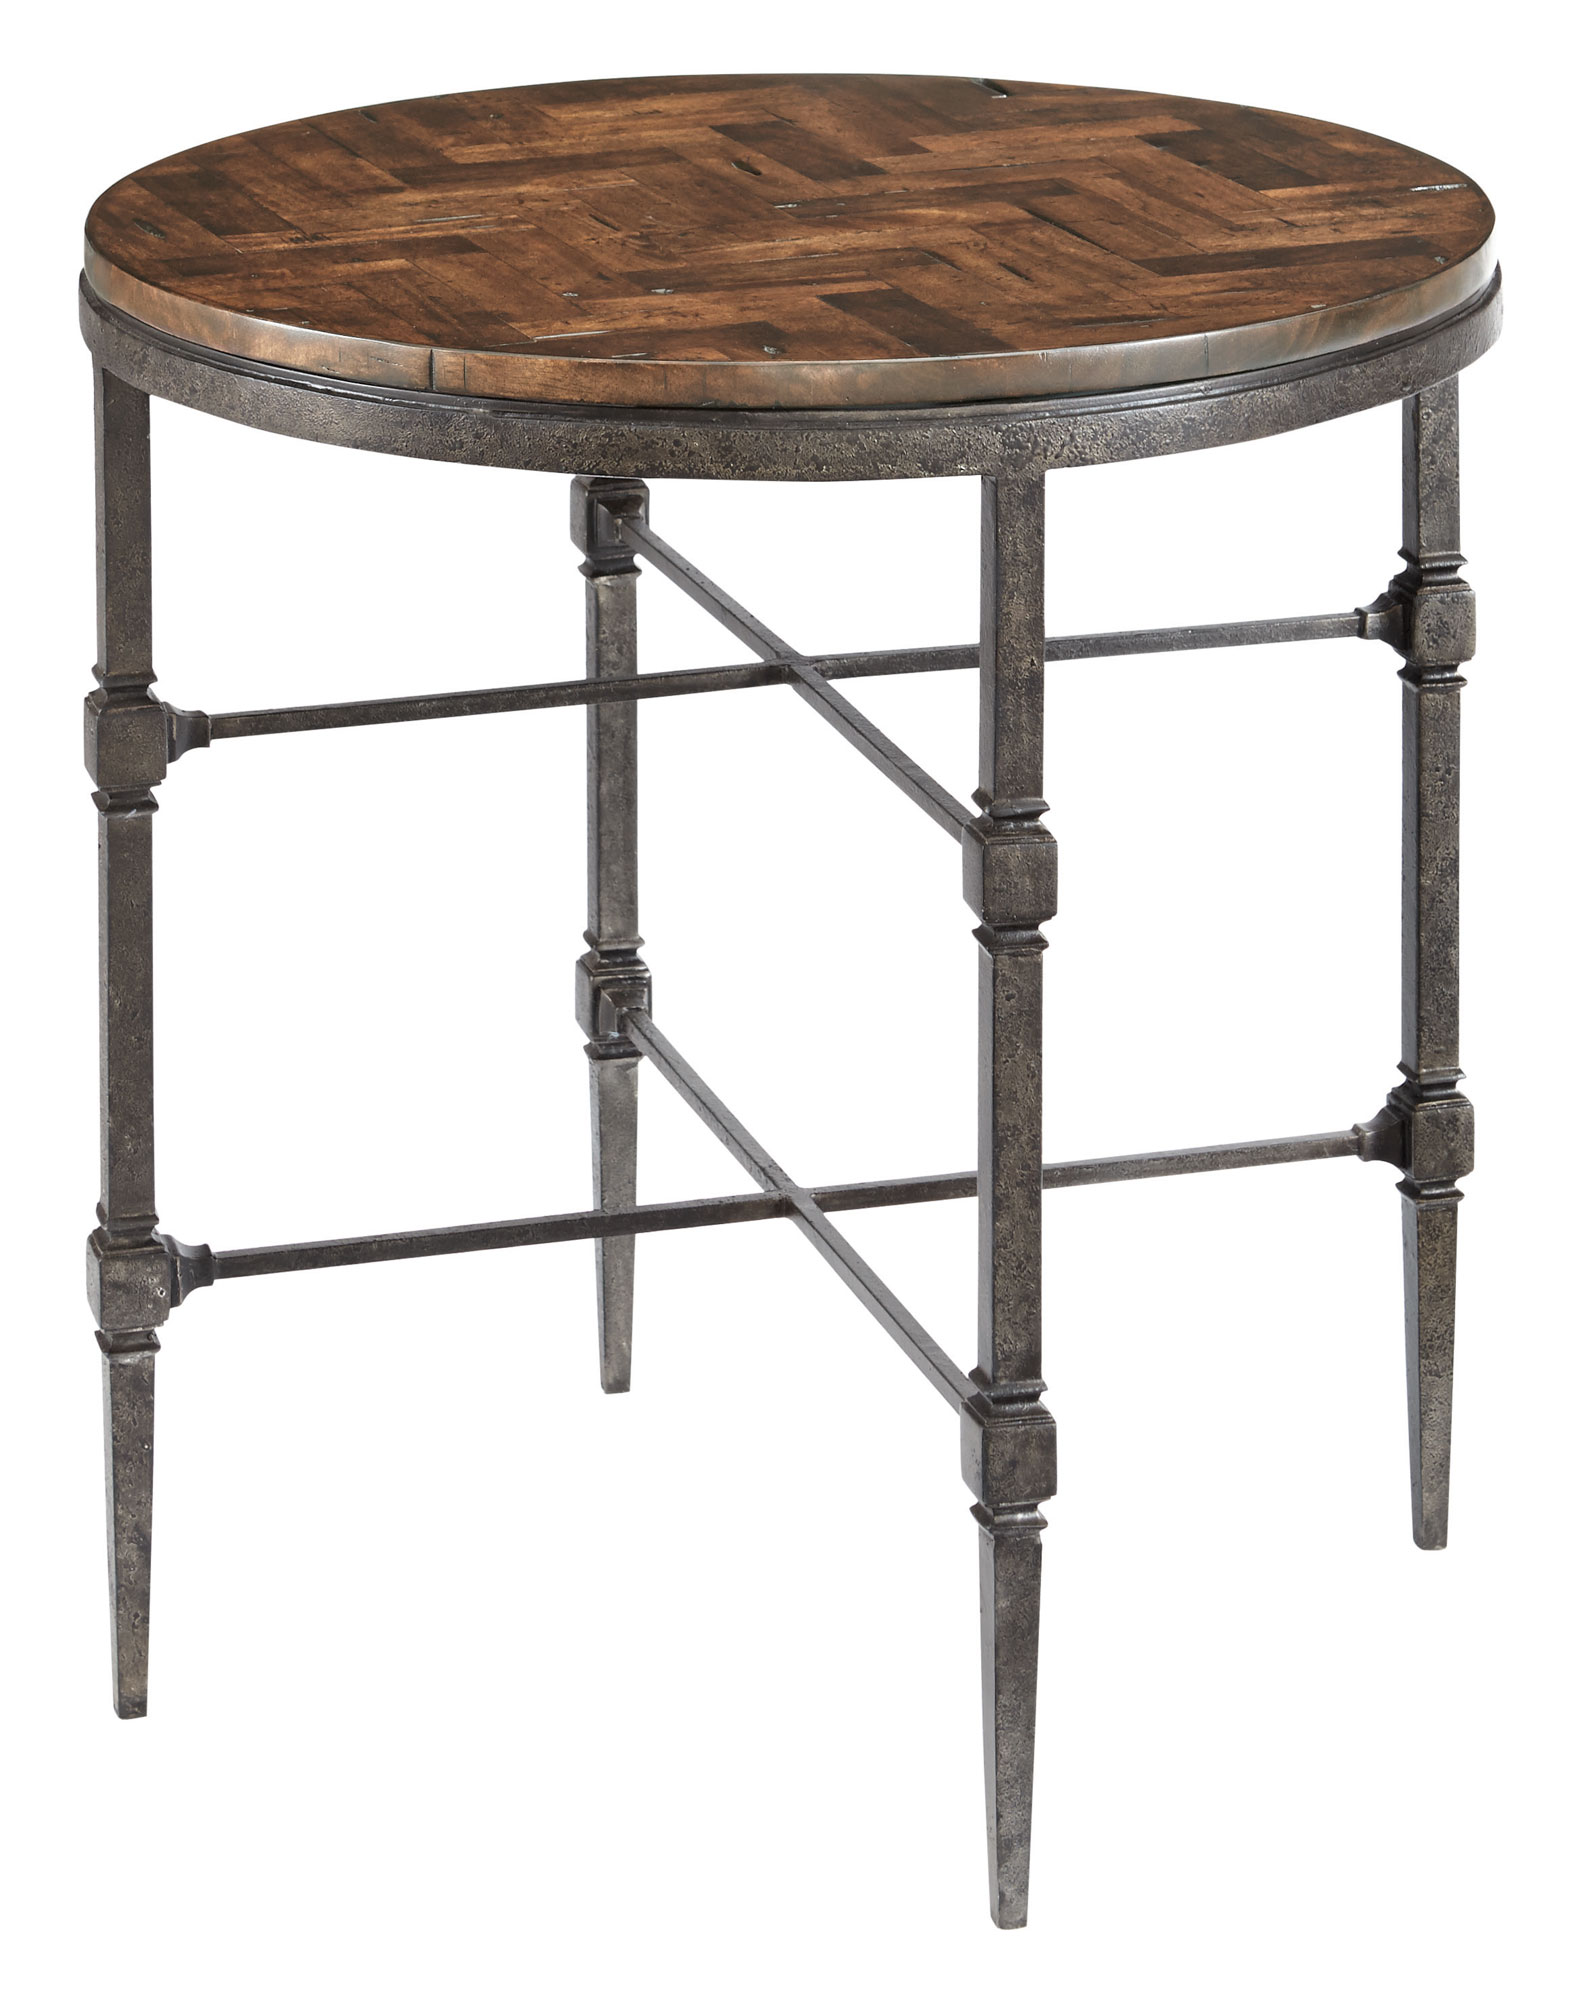 end table with wood top and metal base  bernhardt - everett end table with wood top and metal base